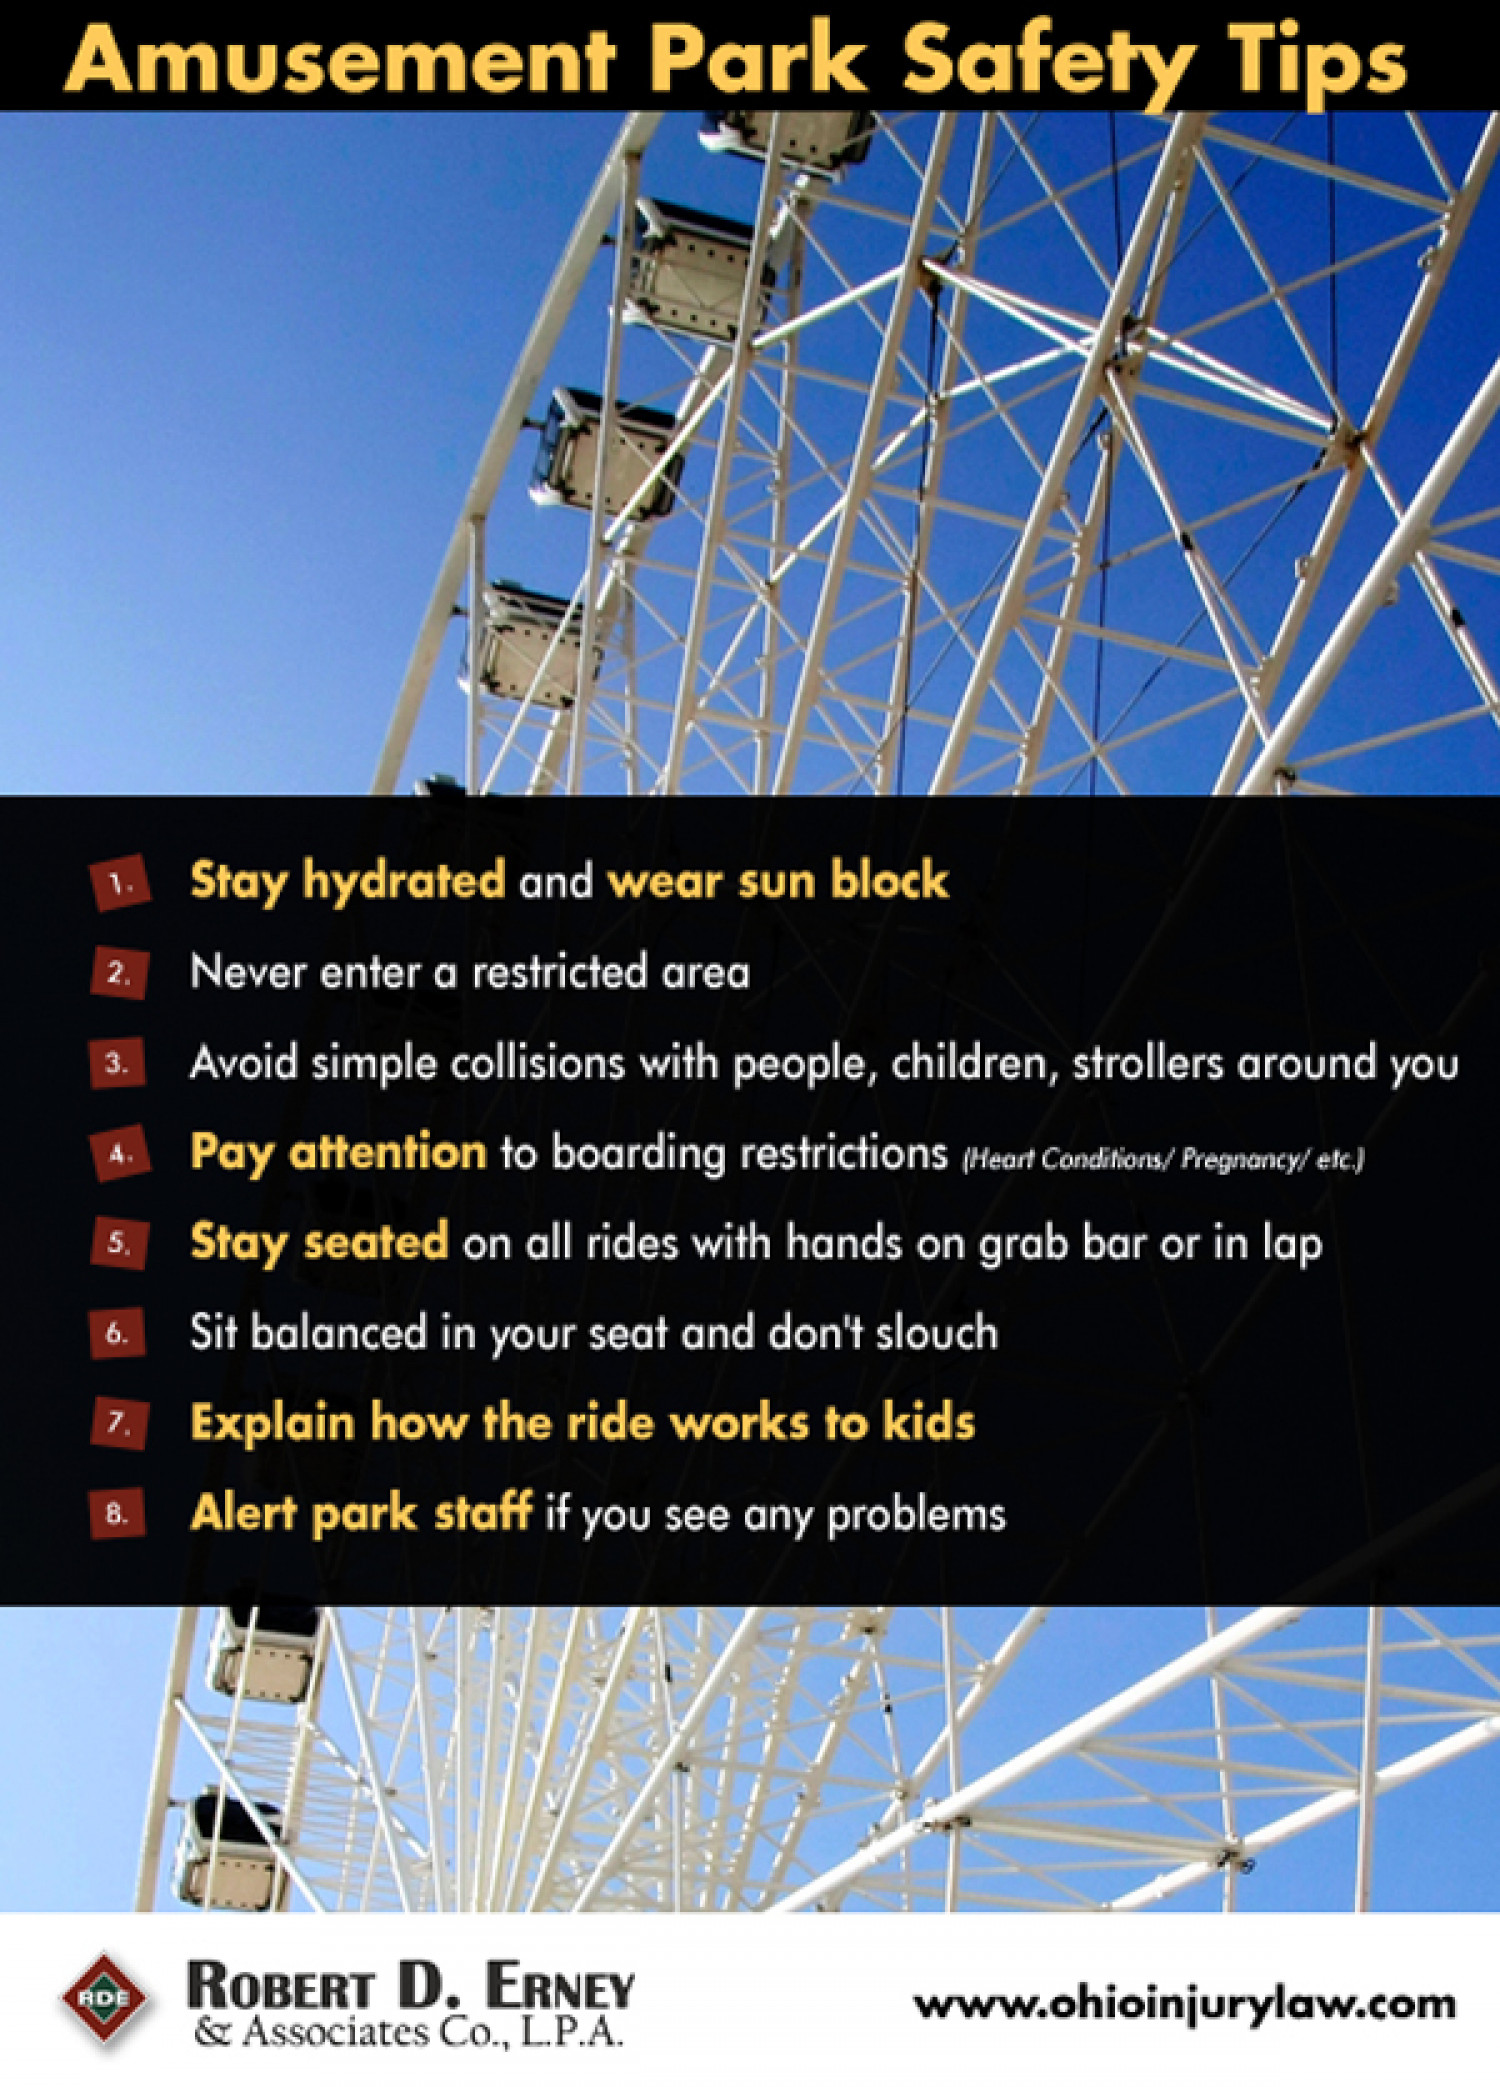 Amusement Park Safety Tips Infographic